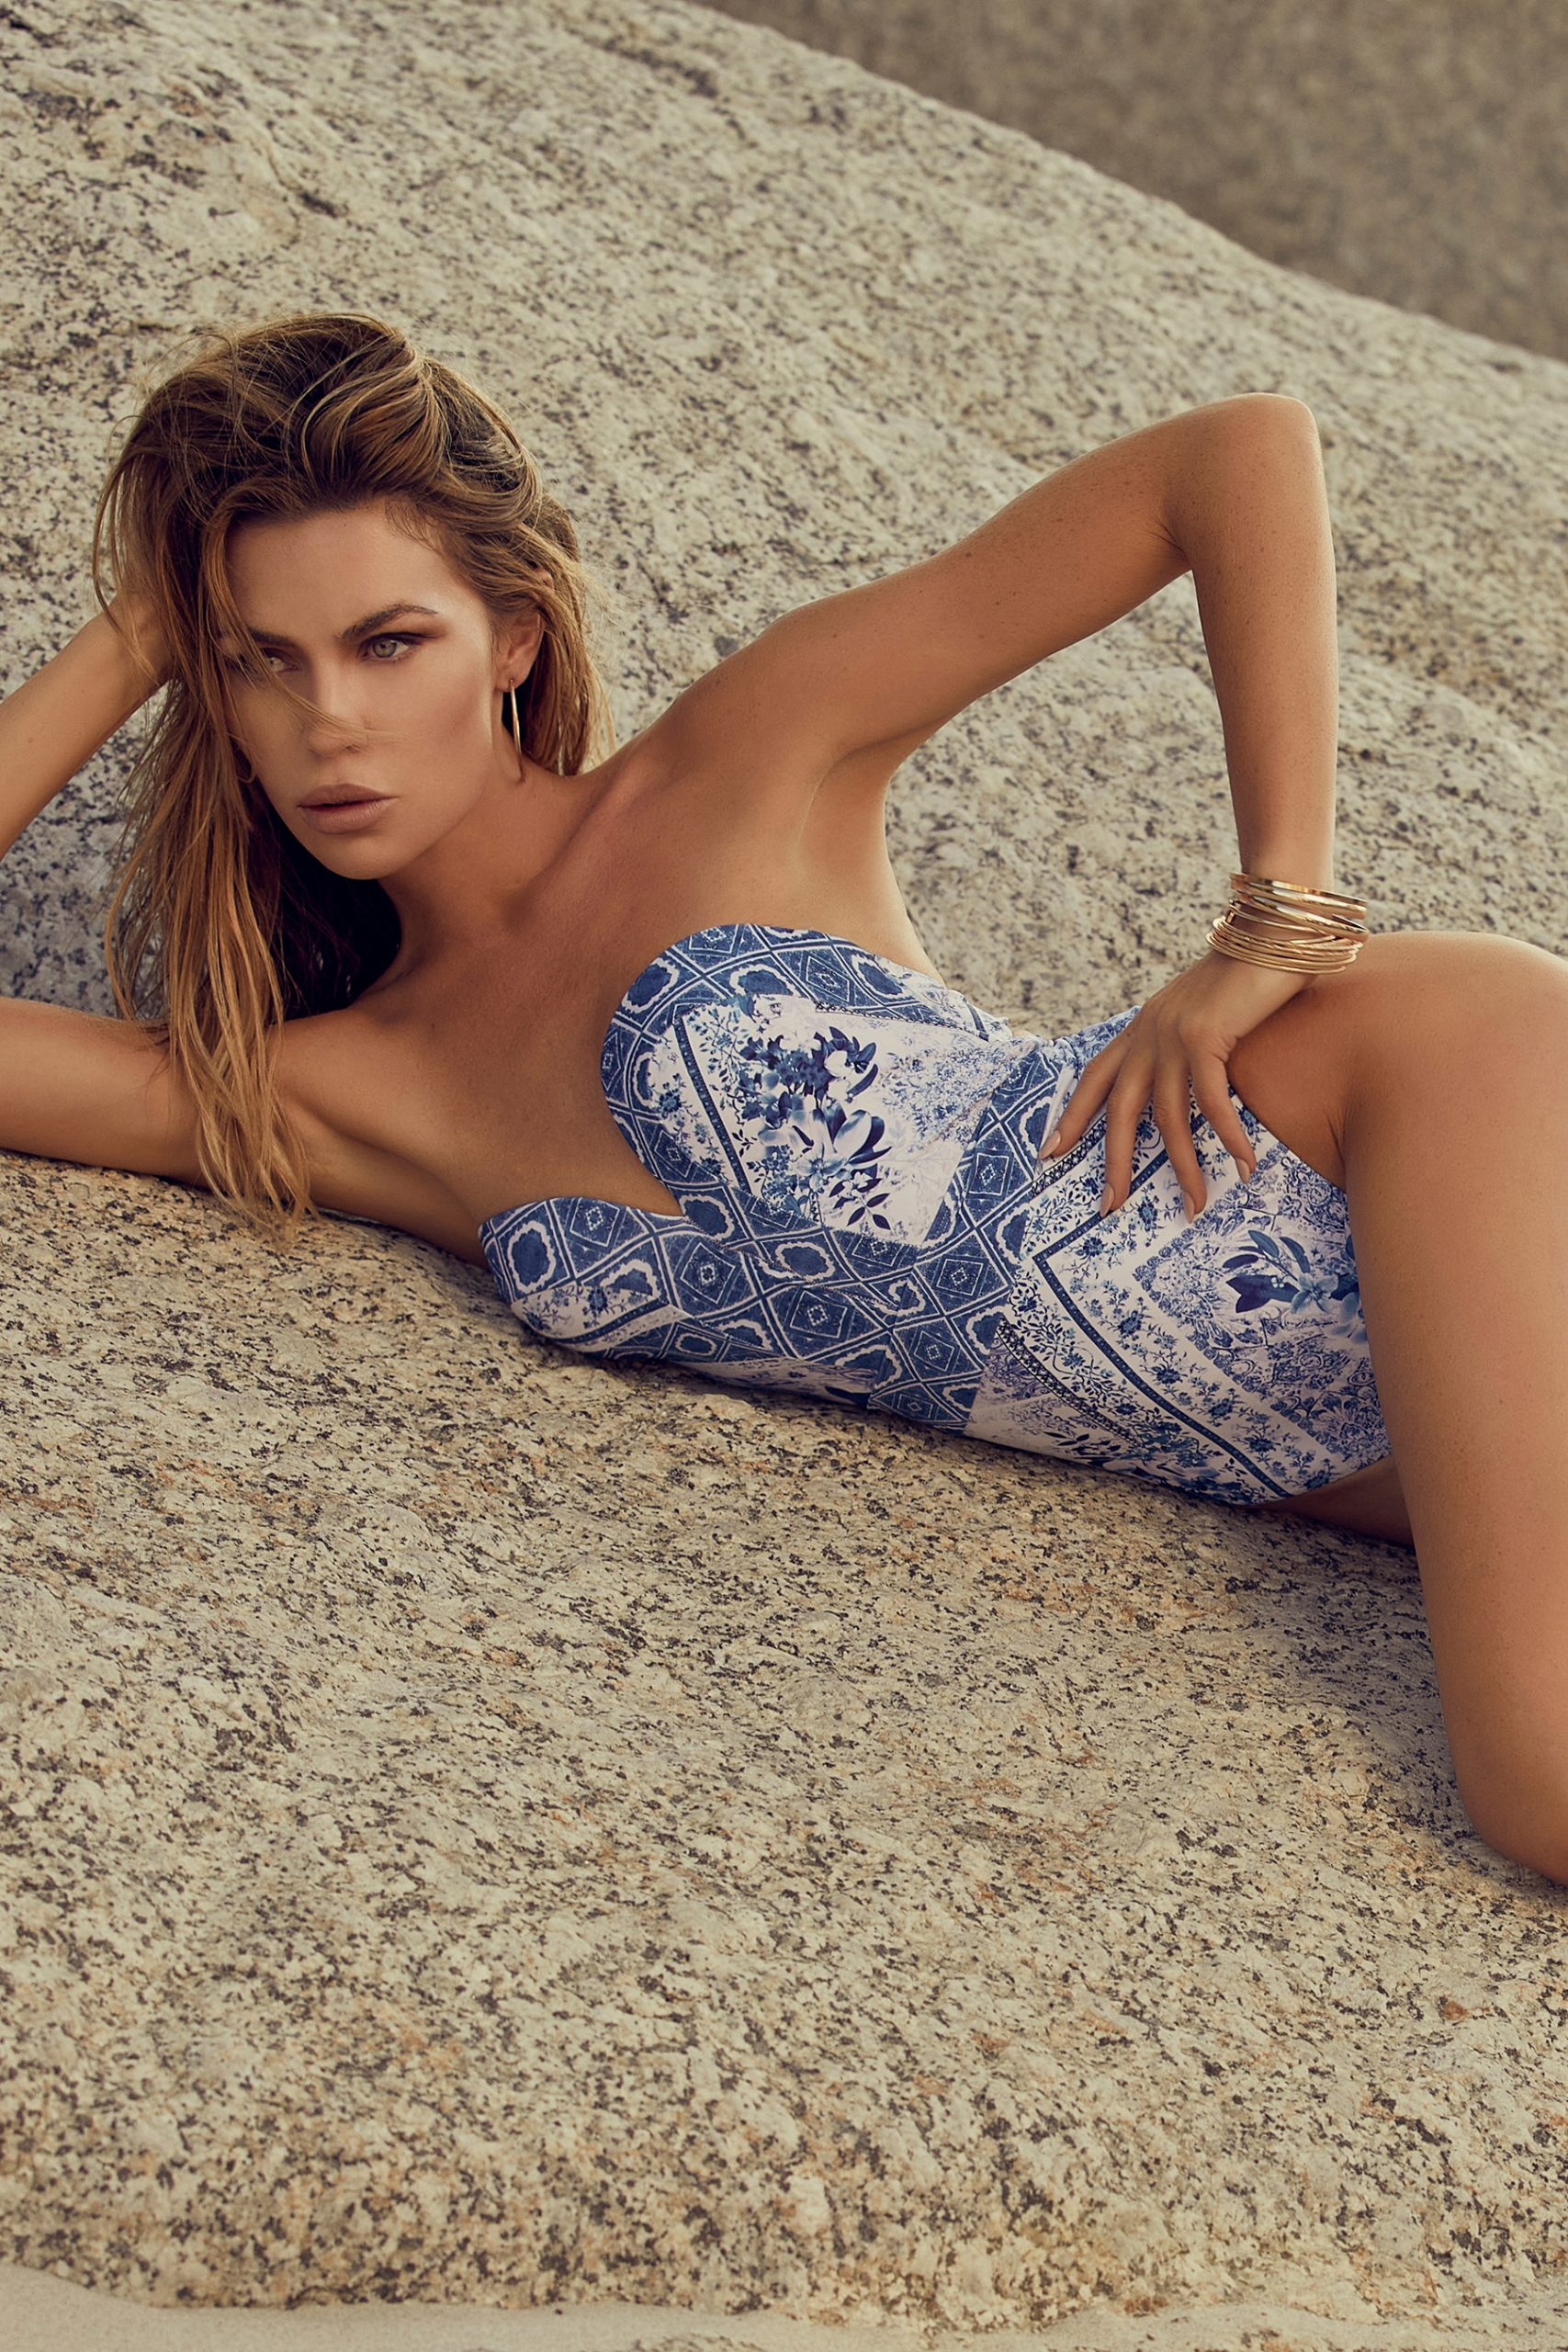 Abbey Clancy in Lipsy Swimwear - August 2020